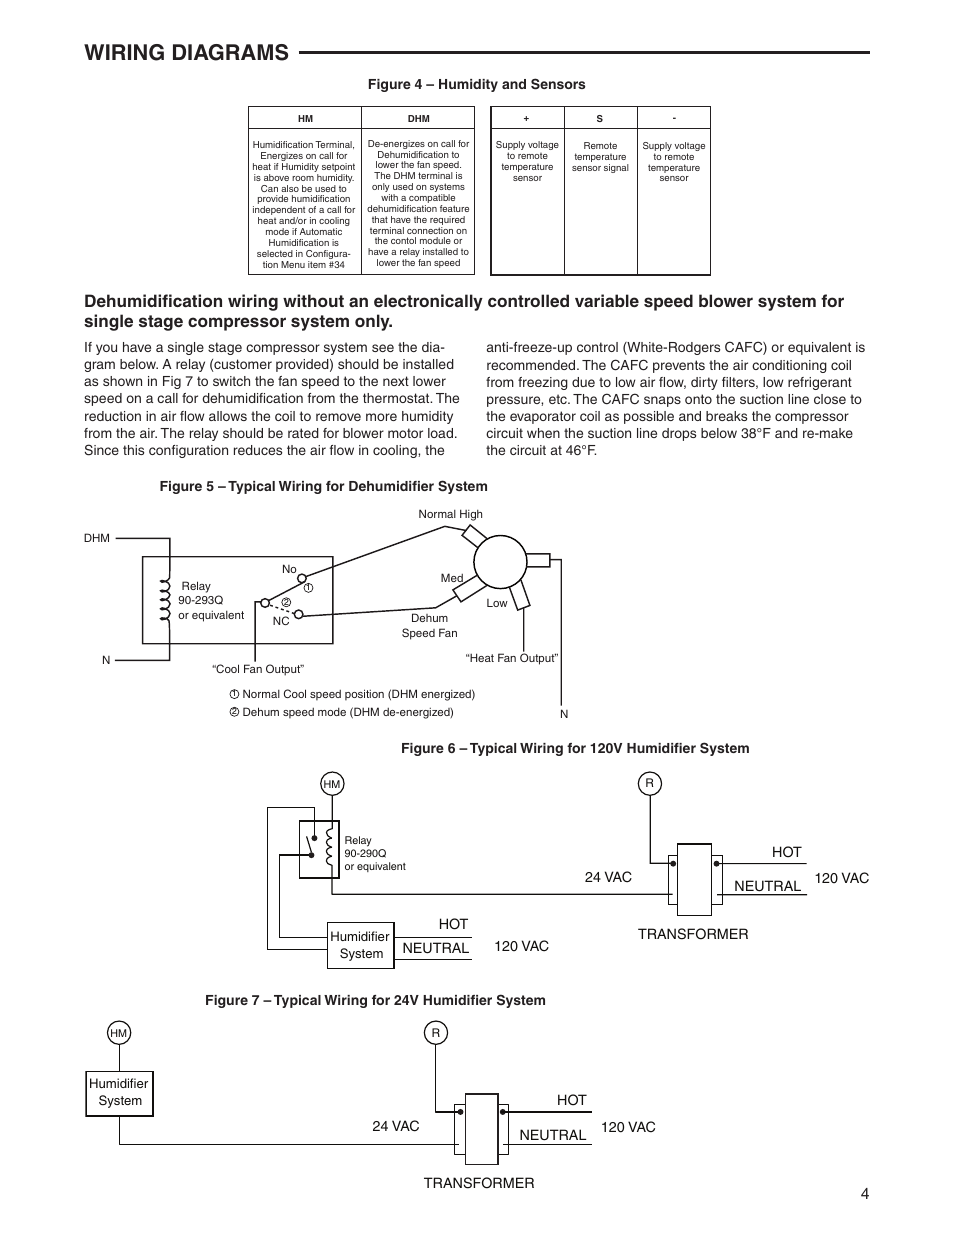 Wiring Diagrams White Rodgers 1f95 1291 User Manual Page 4 16 Typical Evaporator